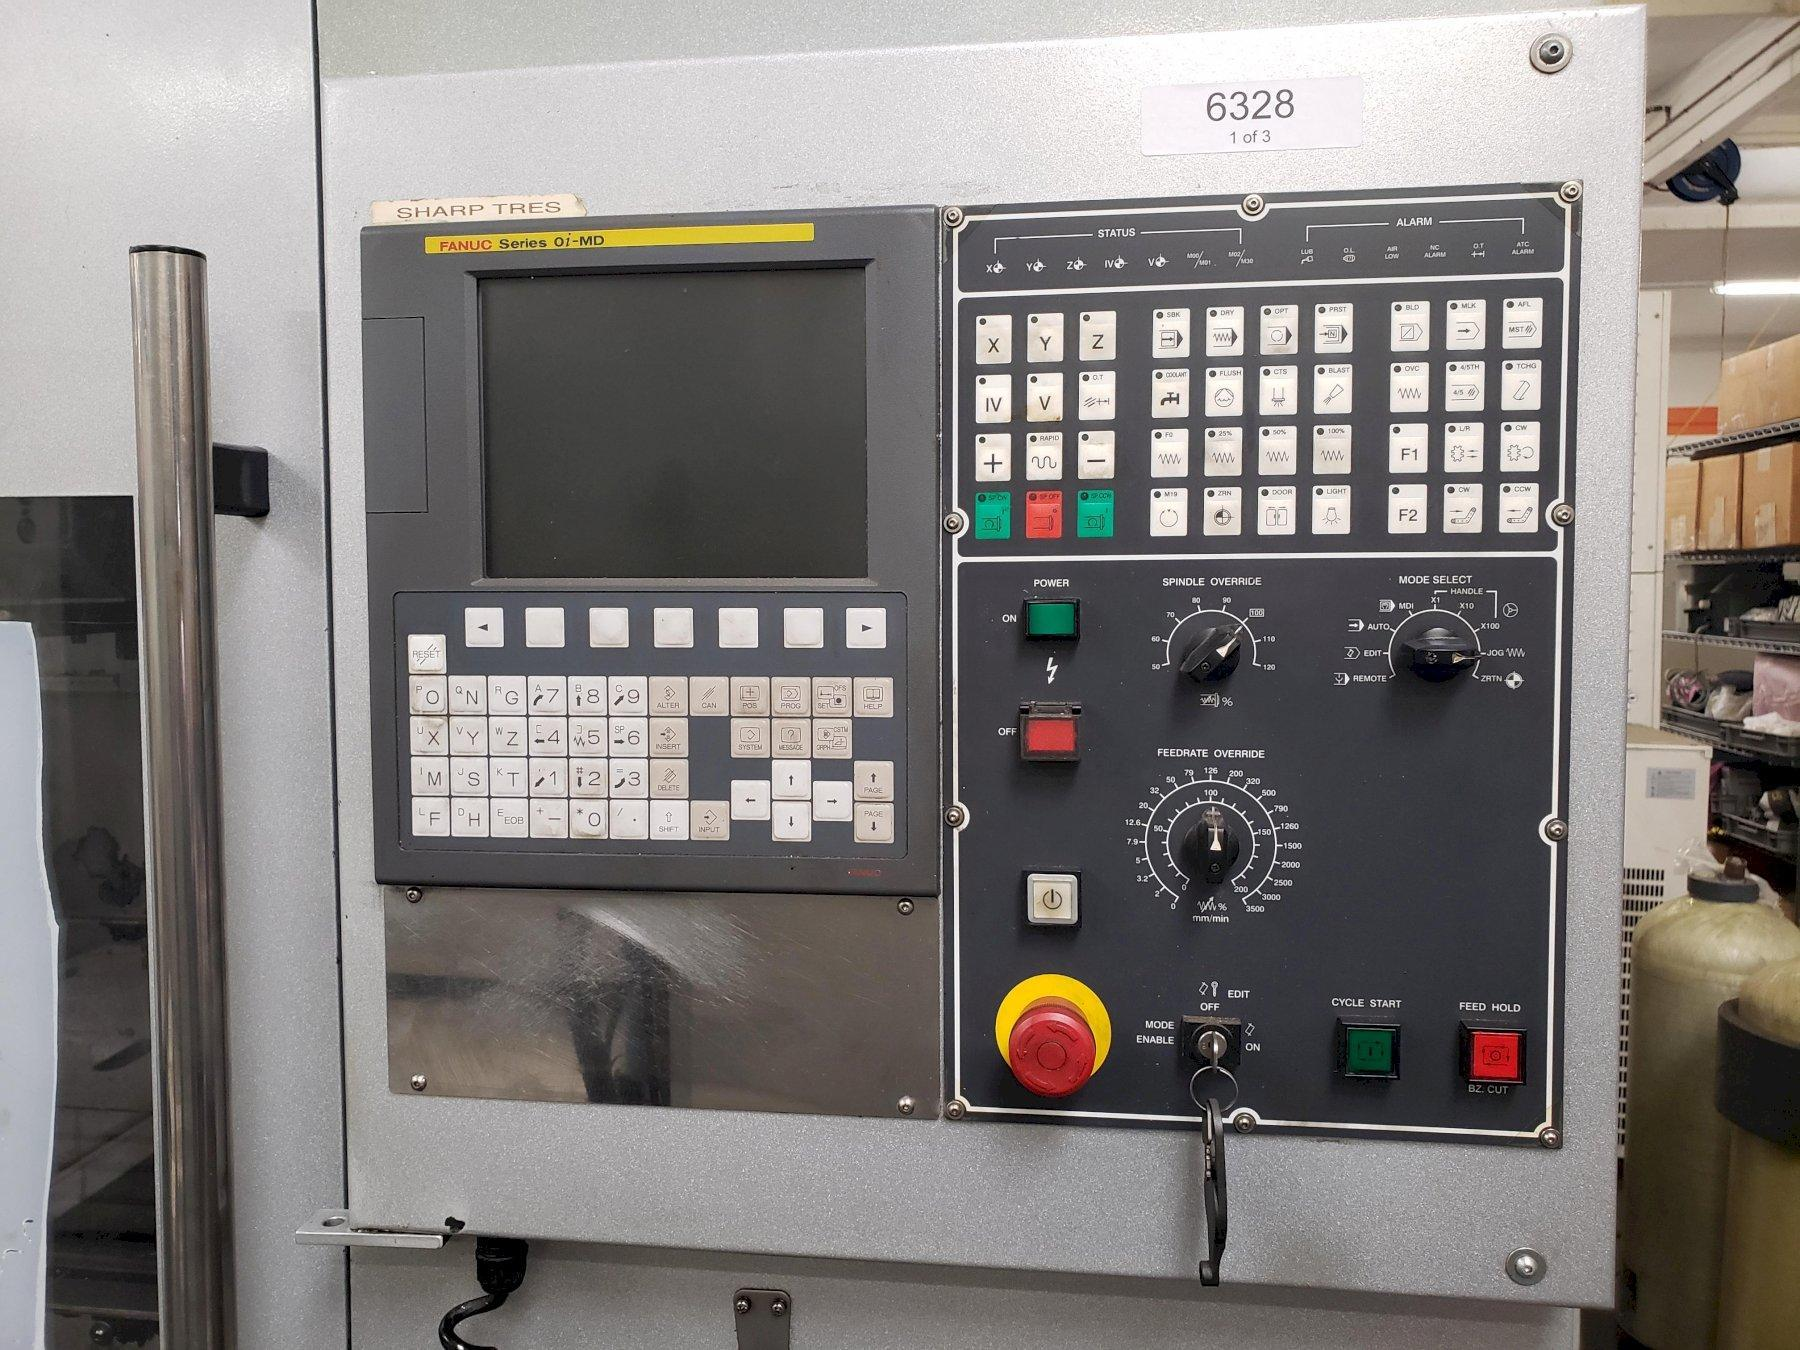 Sharp SV-2412 SX VMC 2011 with: Fanuc Oi-MD CNC Control, Side Mount Tool Changer, Chip Conveyor, and Coolant Tank.